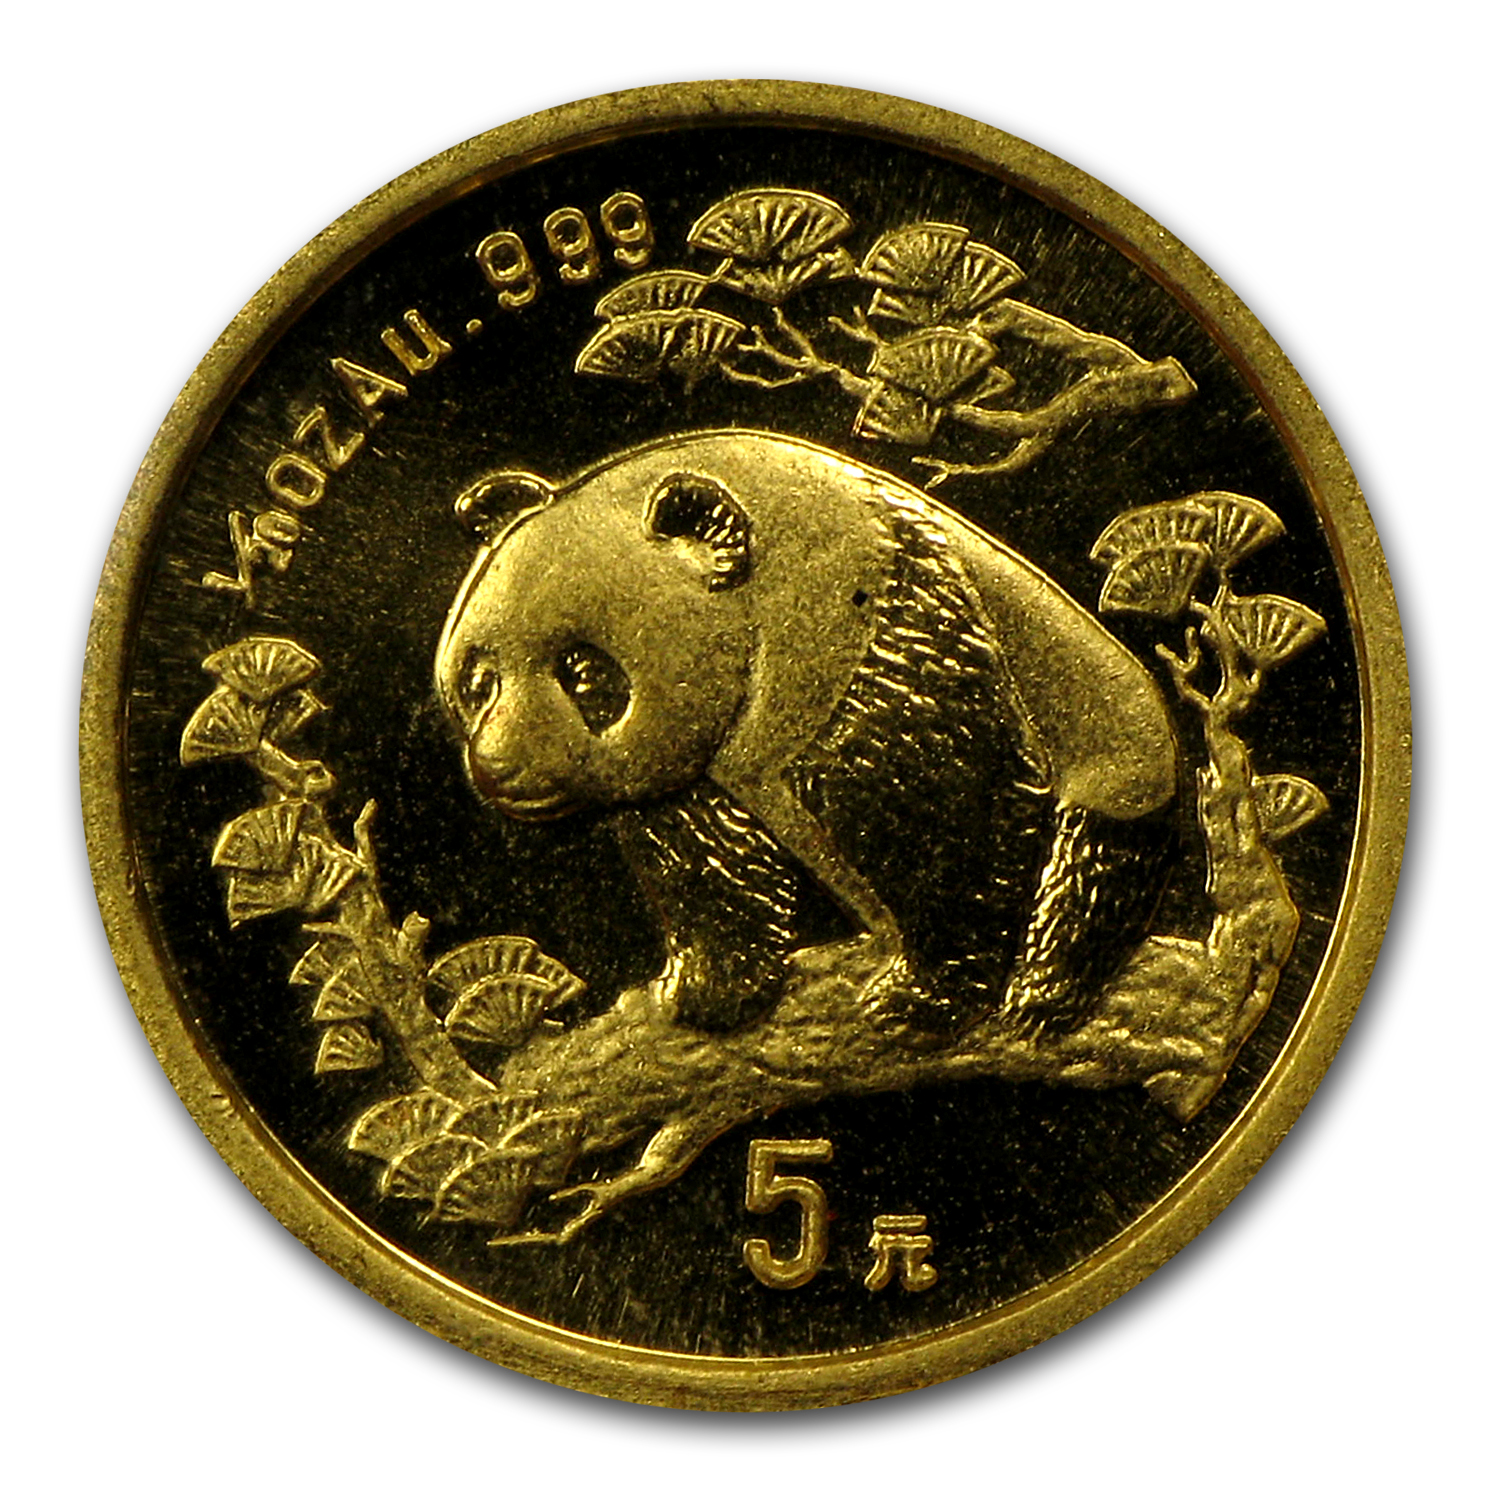 1997 China 1/20 oz Gold Panda Small Date BU (Sealed)